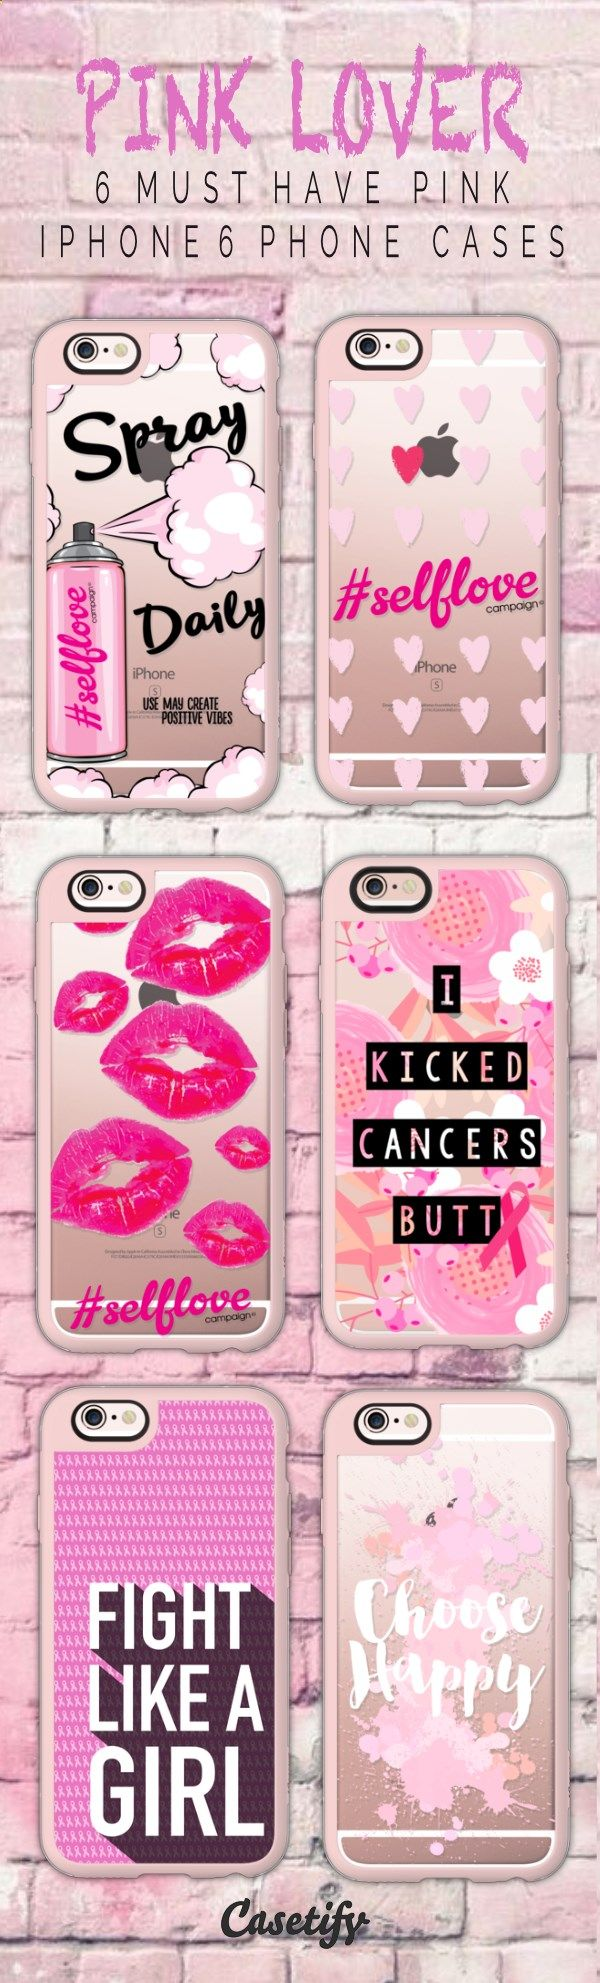 Phone Cases - 6 must have pink iPhone 6 protective phone case designs | Click through to see more iphone phone case ideas >>> www.casetify.com/... #quote | Casetify